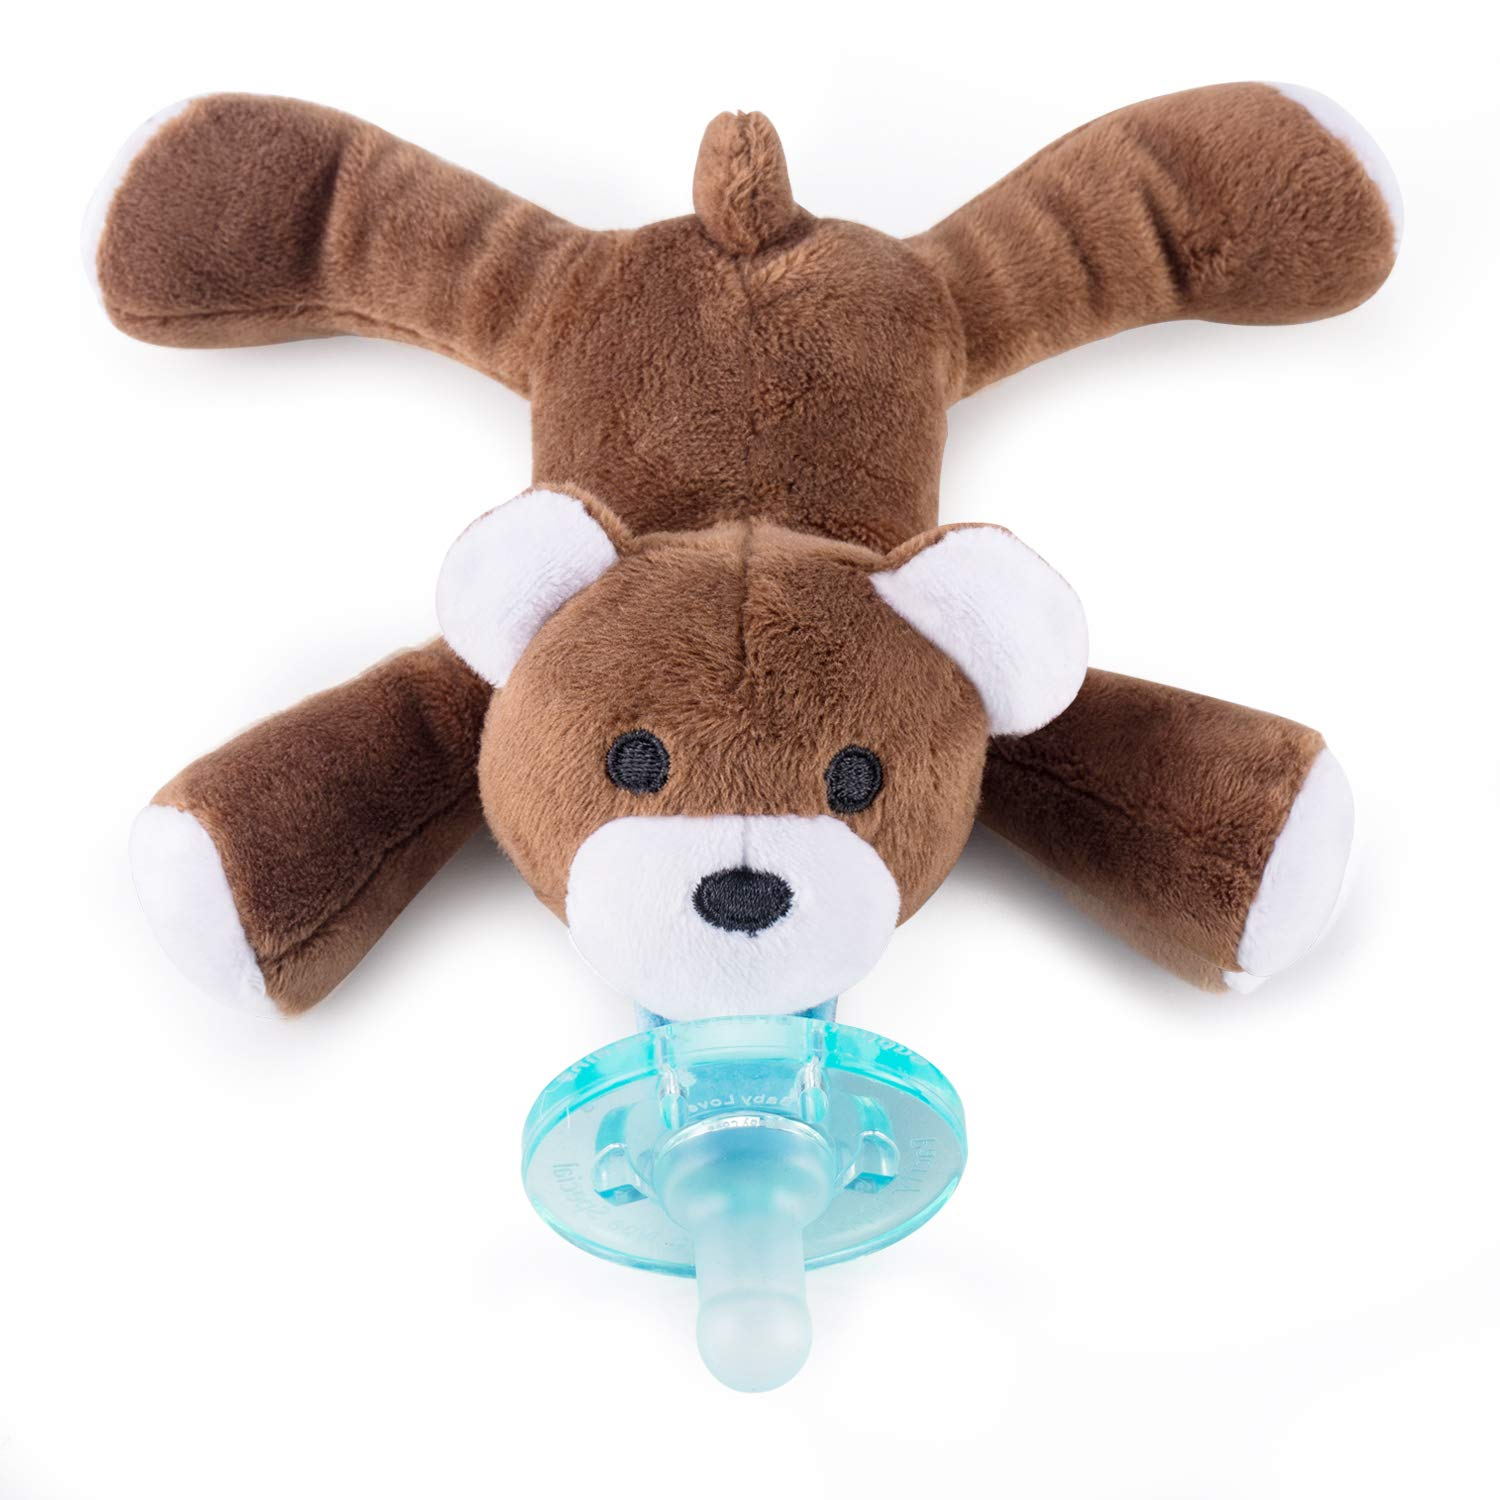 Baby Pacifier Holder Detachable Binky Plush Stuffed Animal Toy BPA Free for Newborn Boy Girl + Soothie Case + Gift Box (Bear)